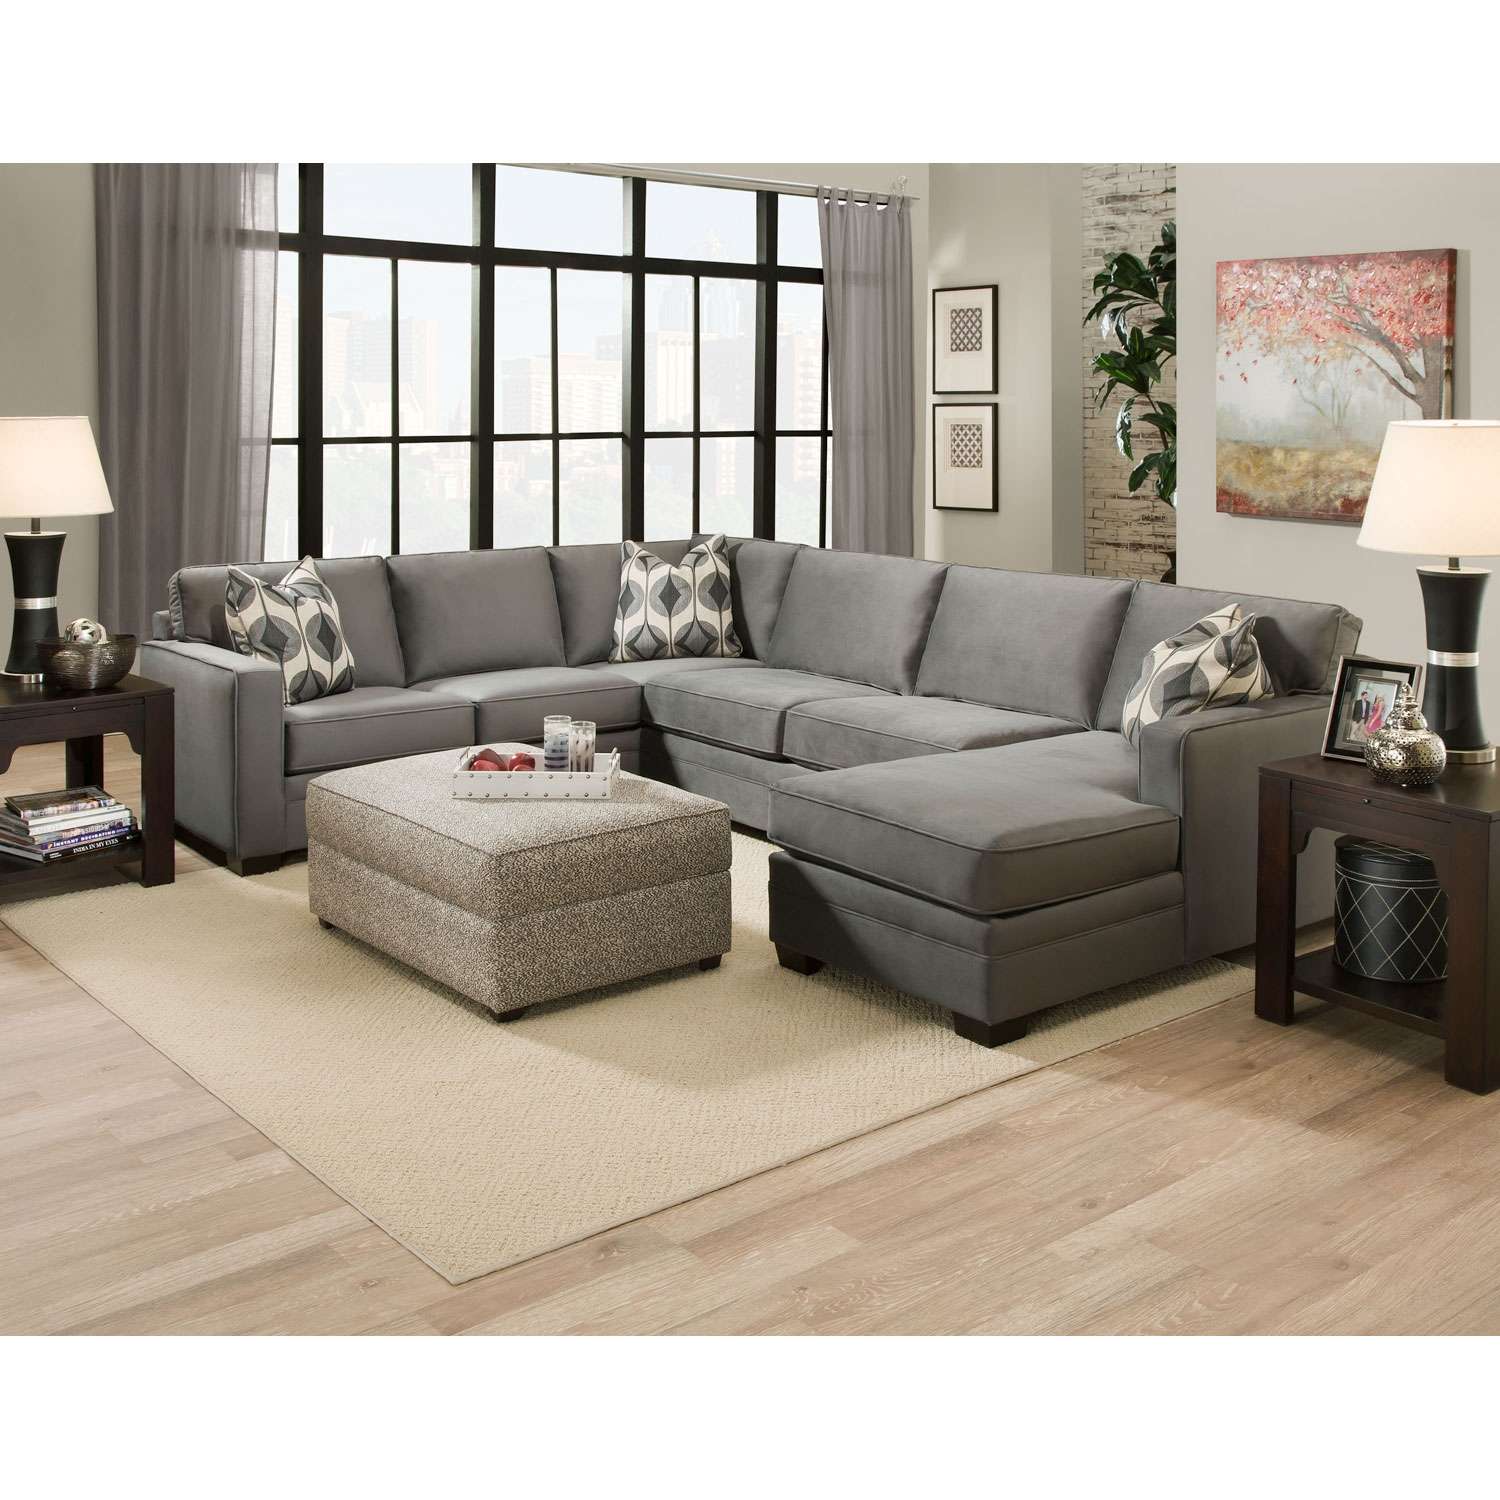 Extra Large Sectional Sofas With Chaise has one of the best kind of other is Sofas Amp Sectionals On Sale Bellacor - Book of Stefanie